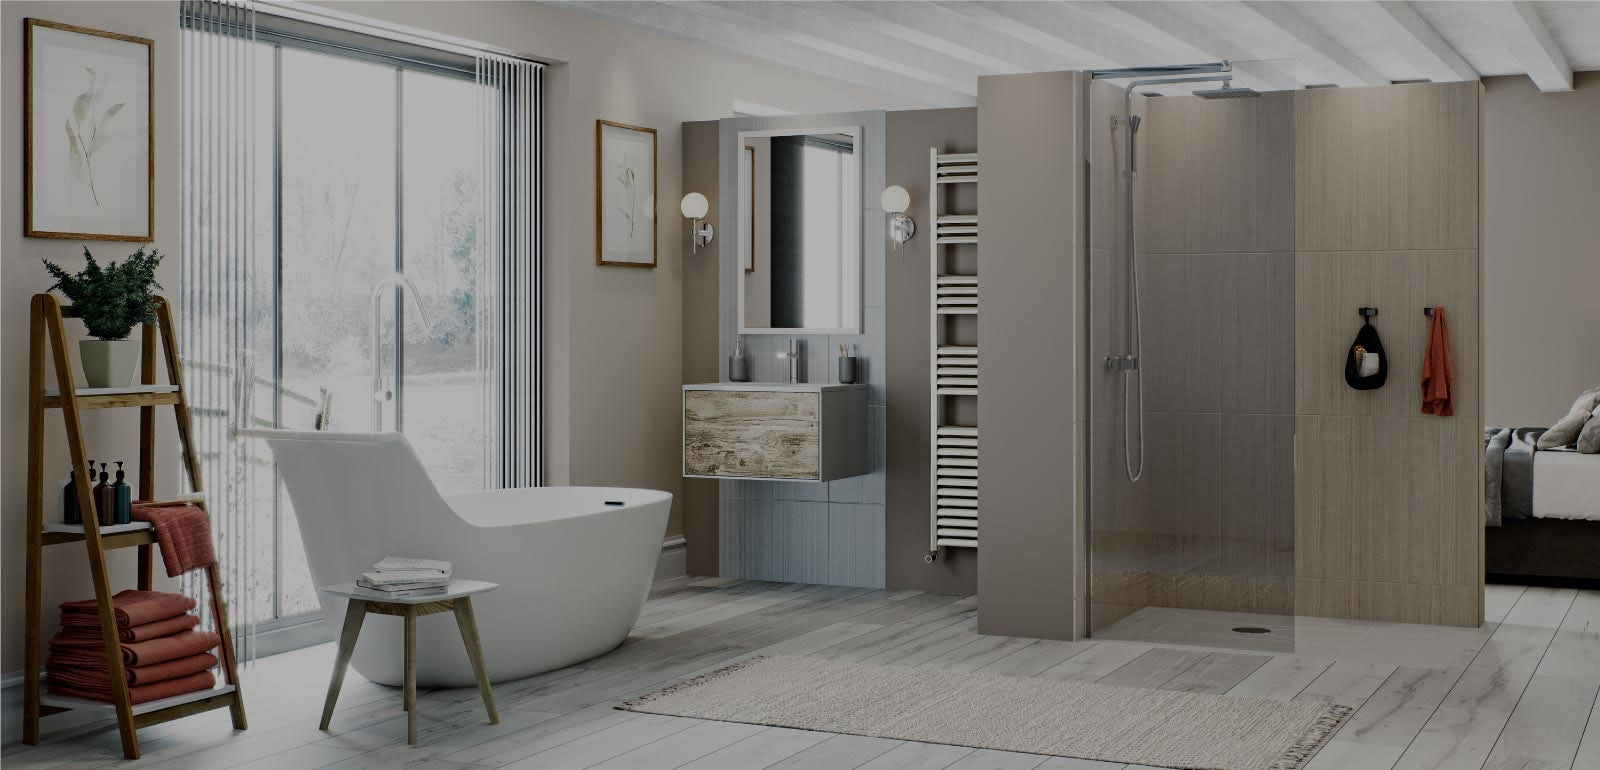 How to dismantle your old bathroom & get rid of waste